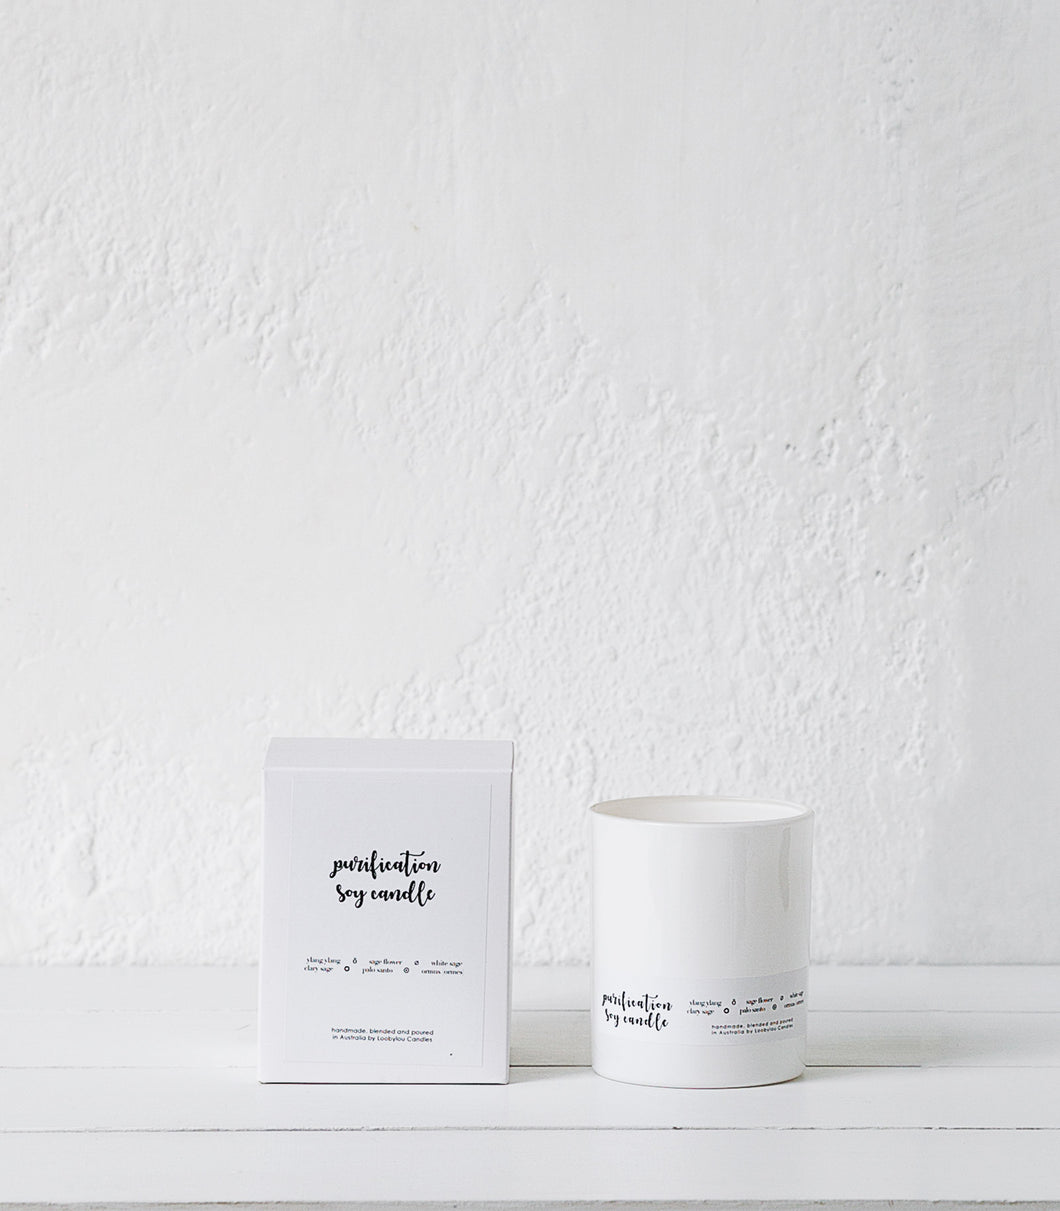 Loobylou / Purification Soy Candle